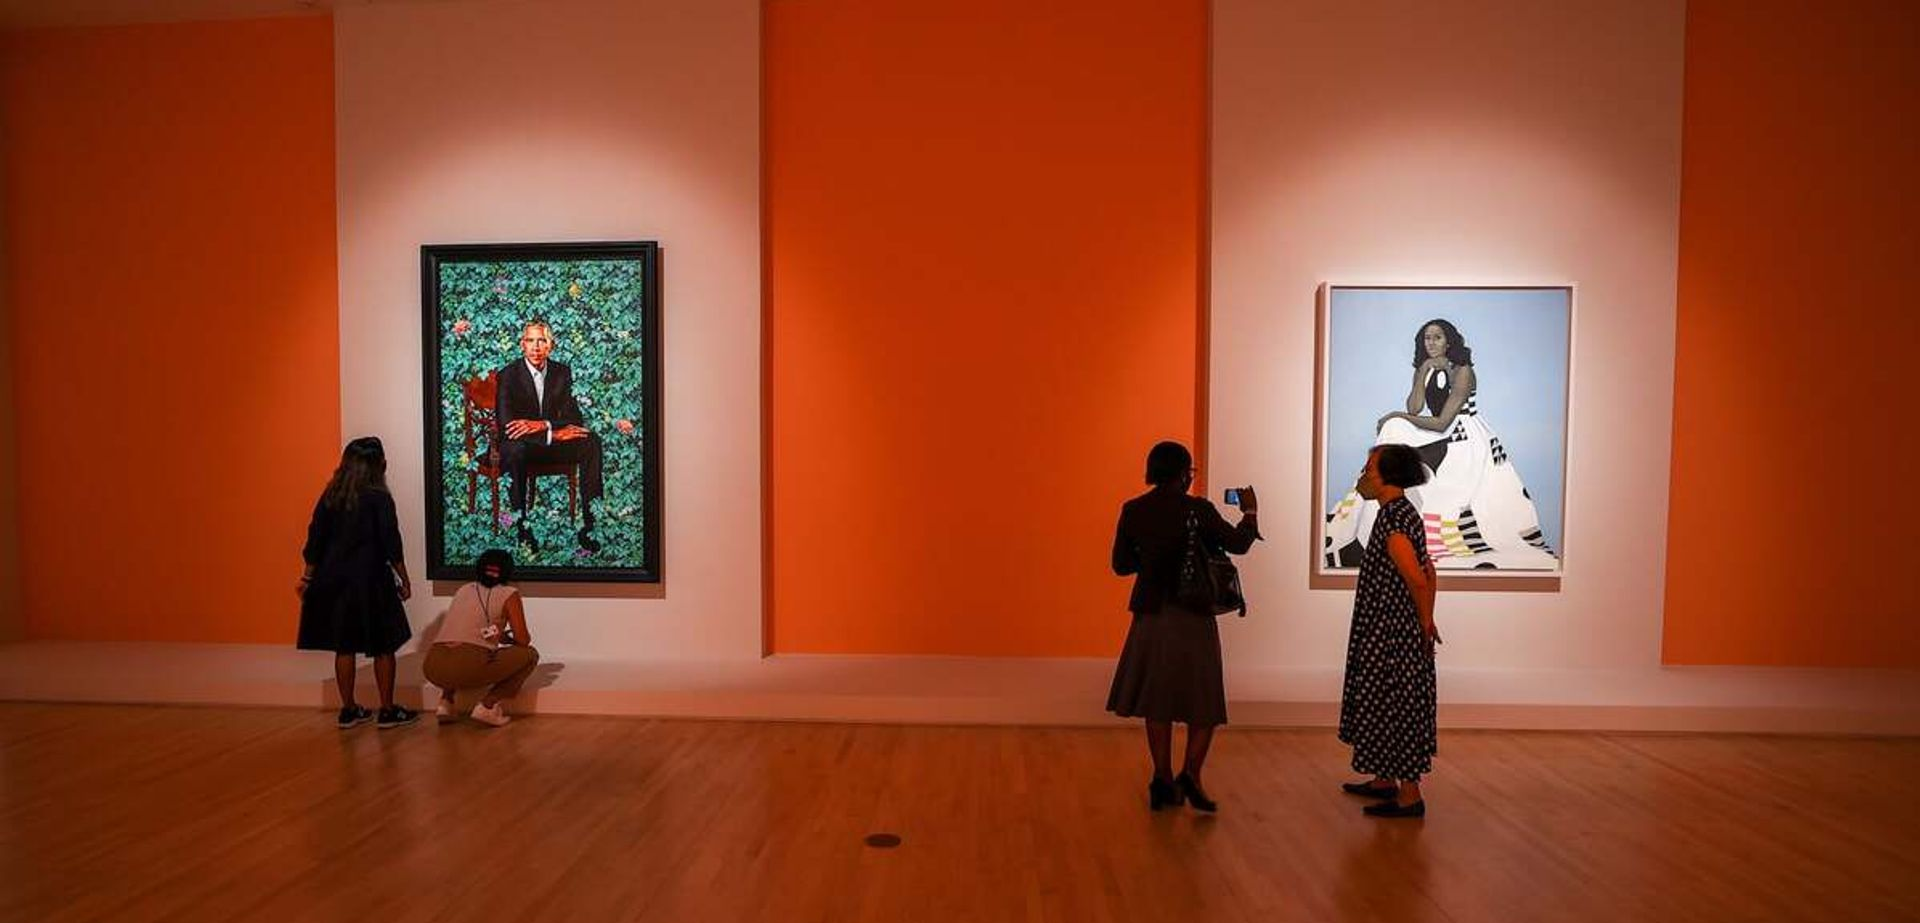 The Obama Portraits at the Brooklyn Museum in New York Photo: Tayfun Coskun/Anadolu Agency via Getty Images